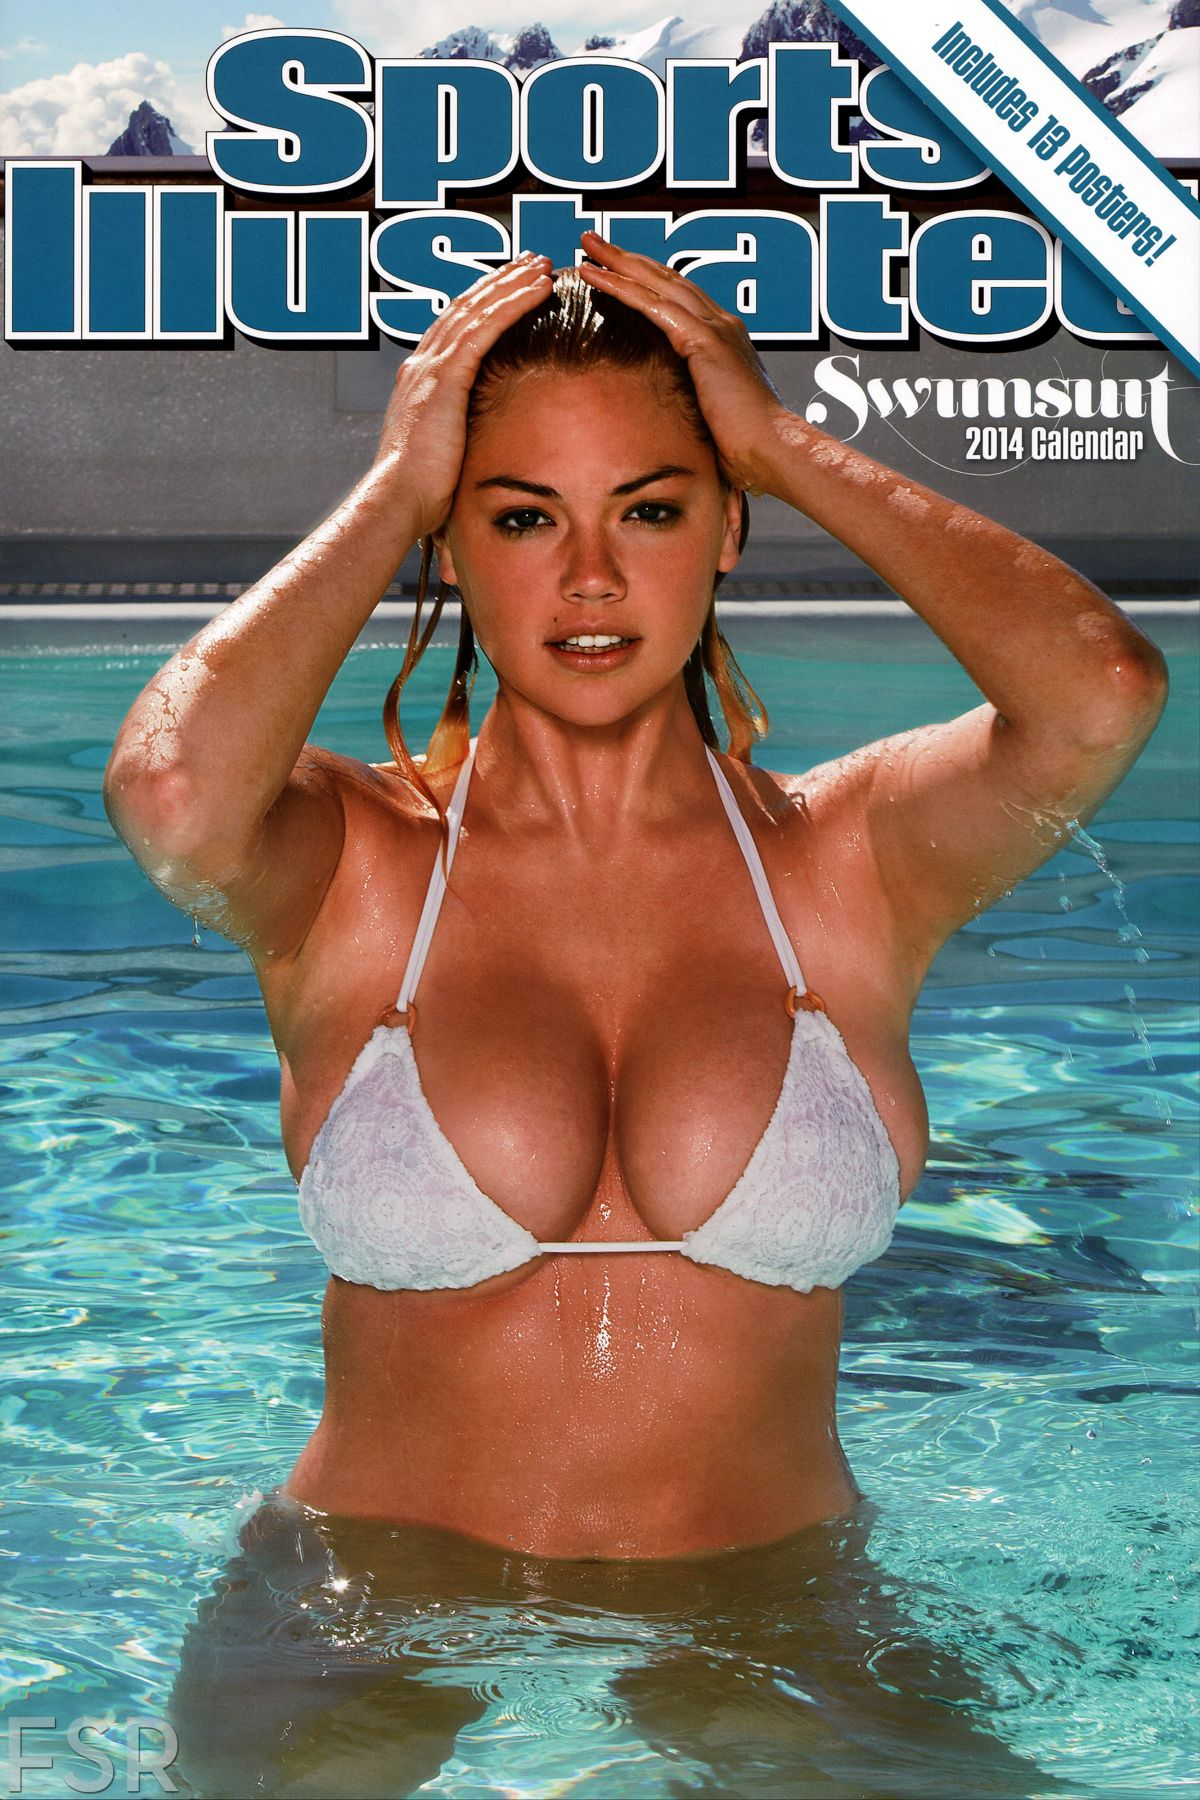 Kate Upton – Sports Illustrated Swimsuit Poster Calendar 2014